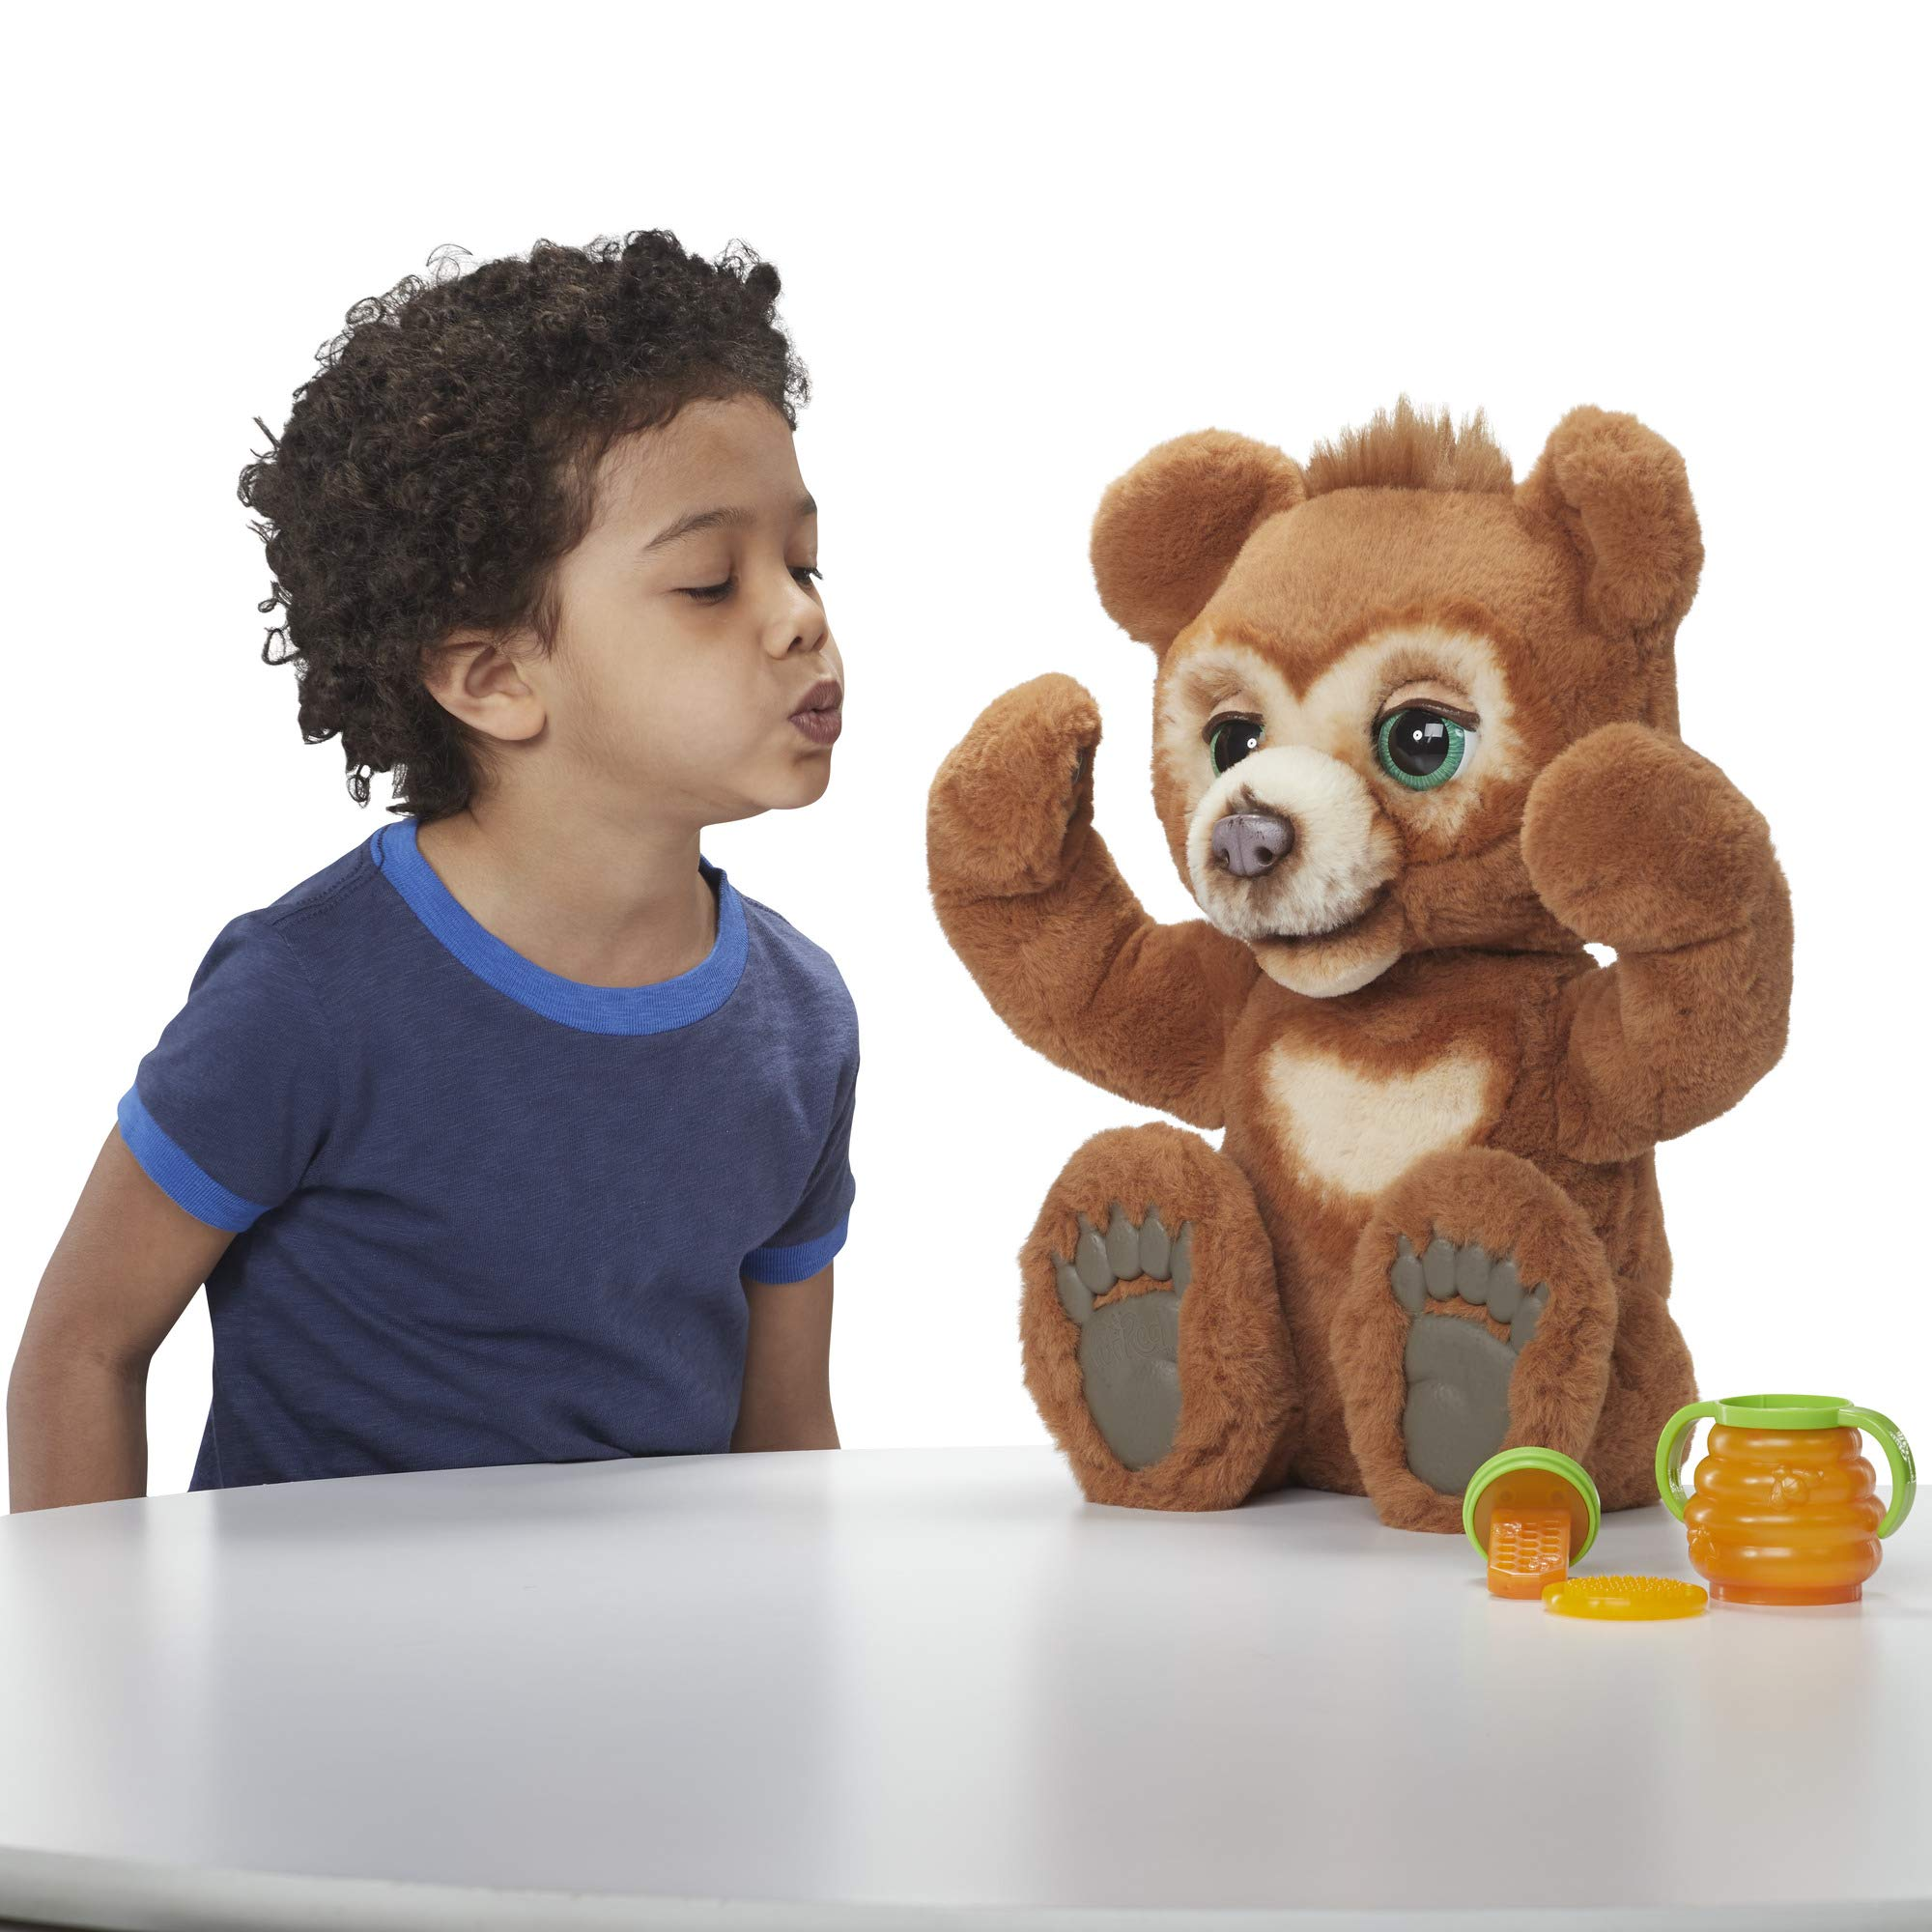 FurReal Cubby, The Curious Bear Interactive Plush Toy, Ages 4 and Up by FurReal (Image #4)